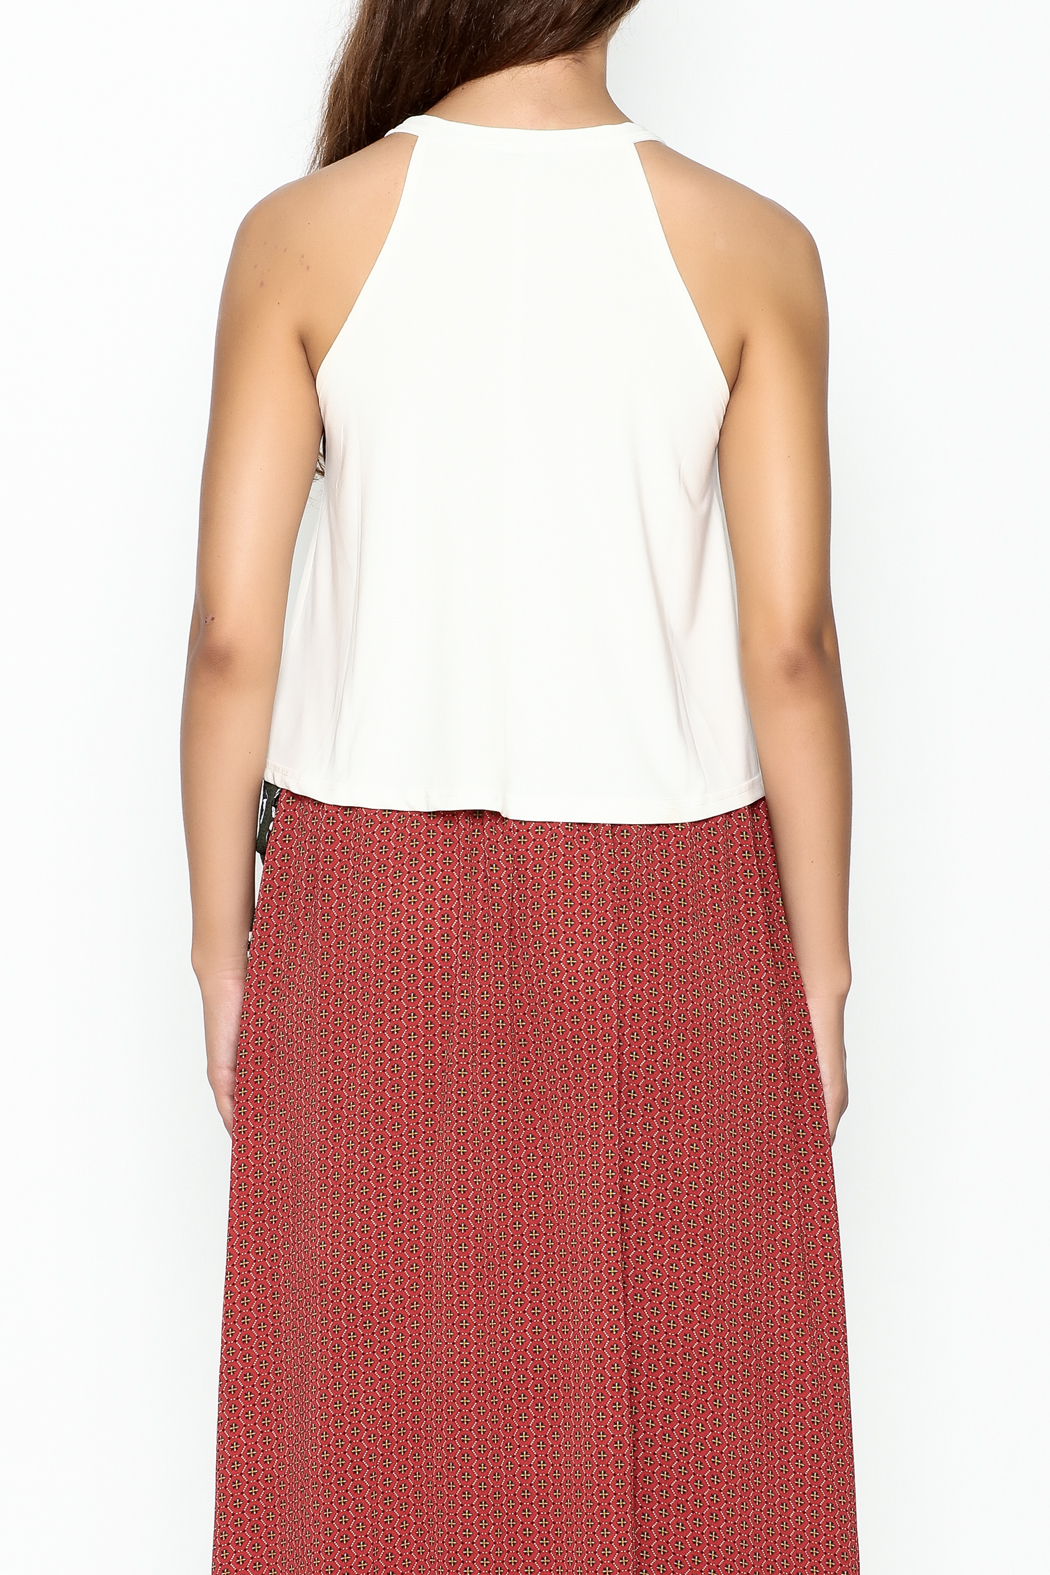 Favlux Tie Up Top - Back Cropped Image